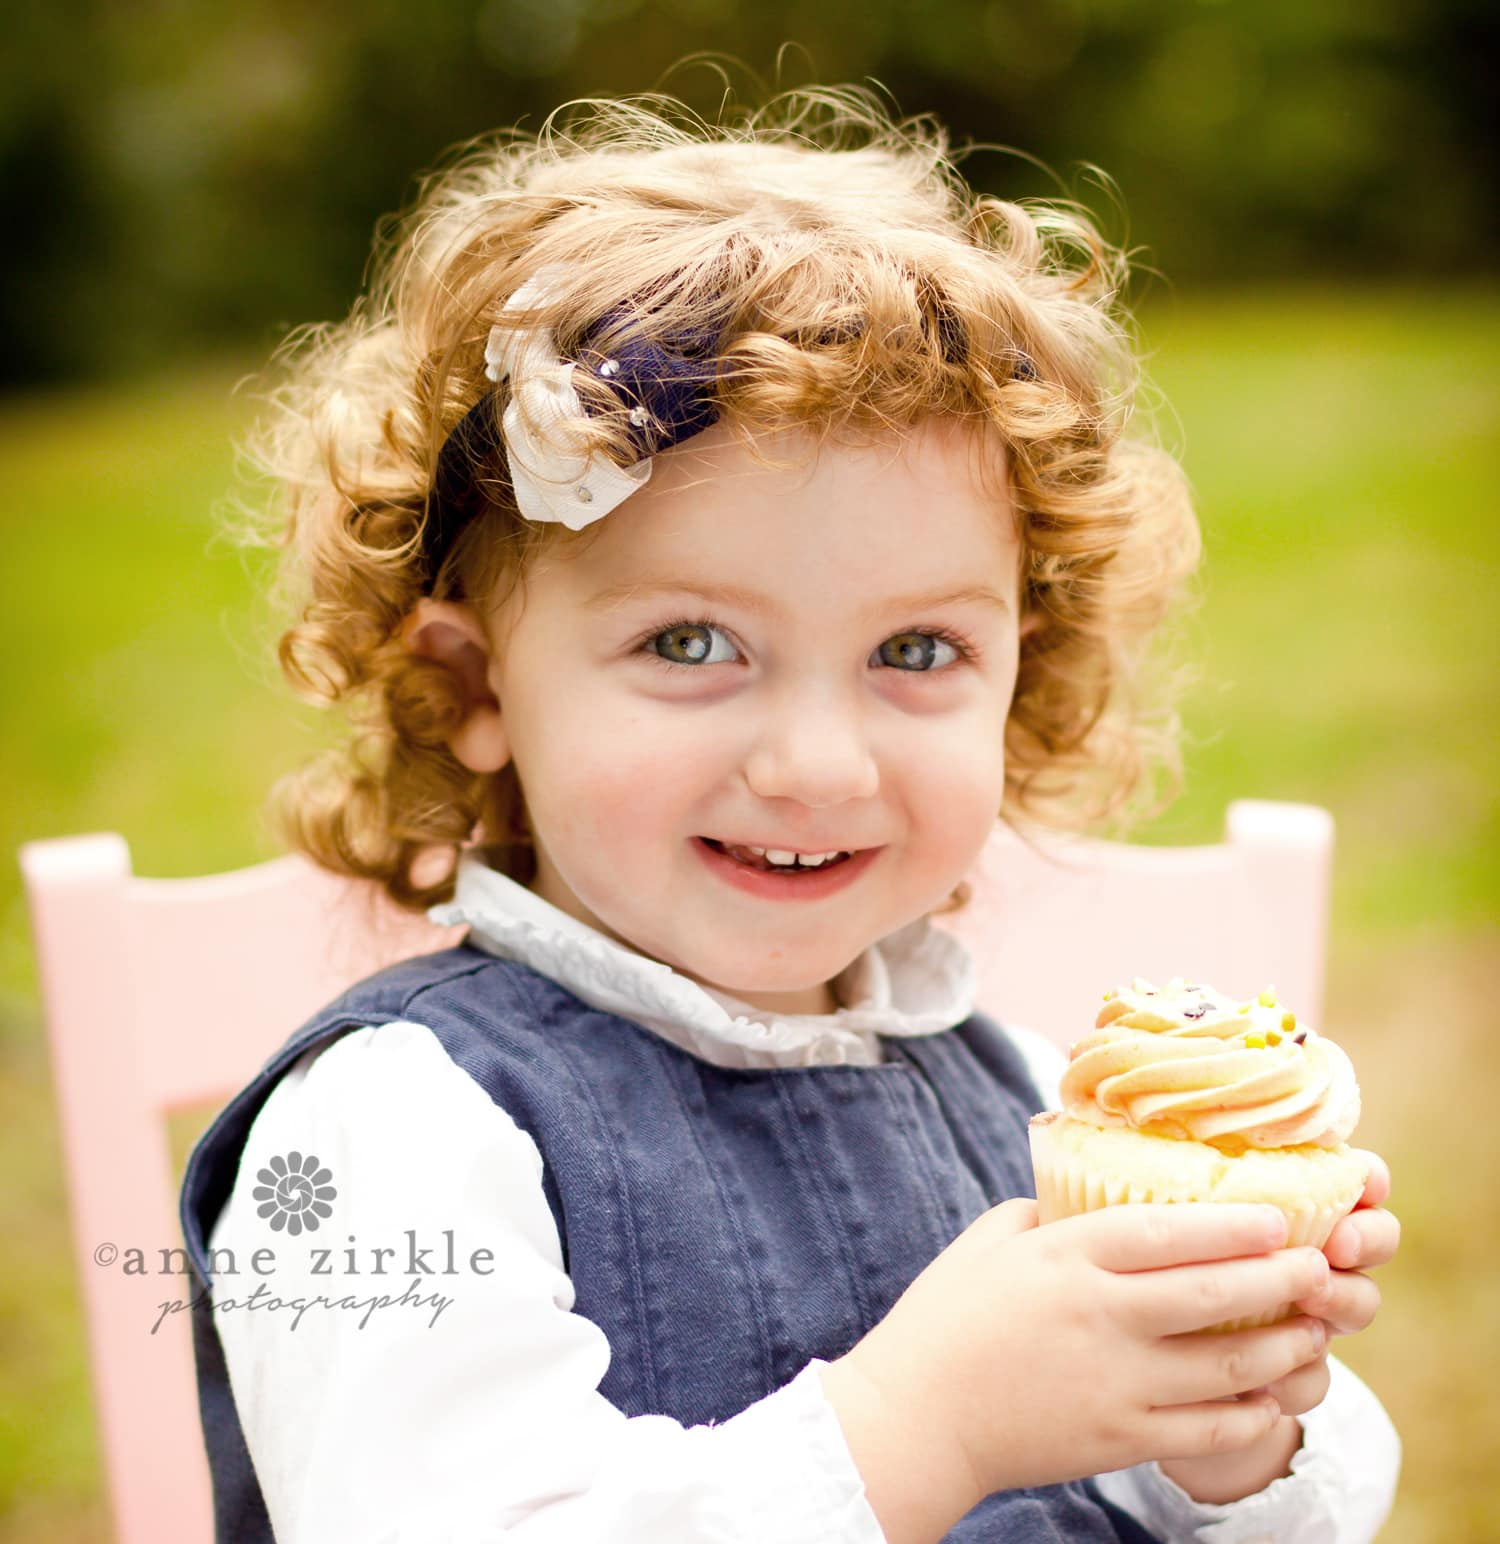 little-girl-with-a-cupcake